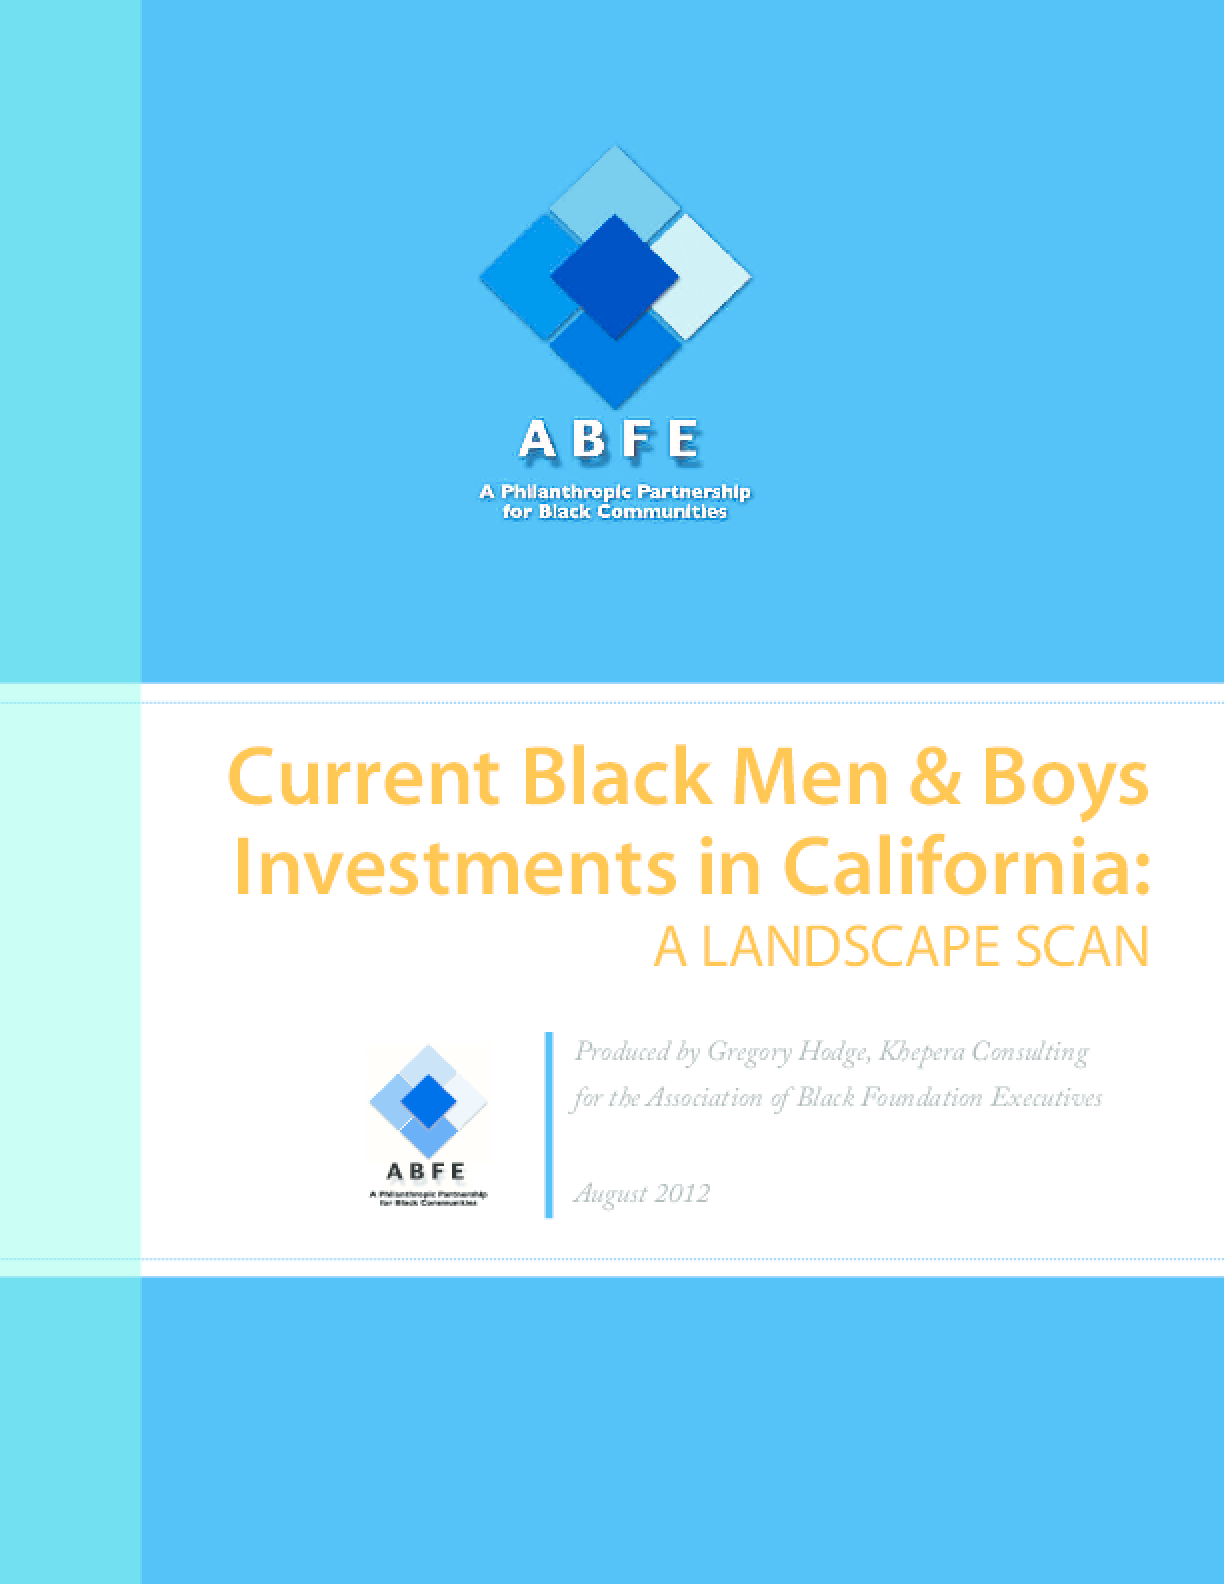 Current Black Men and Boys Investments in California: A Landscape Scan